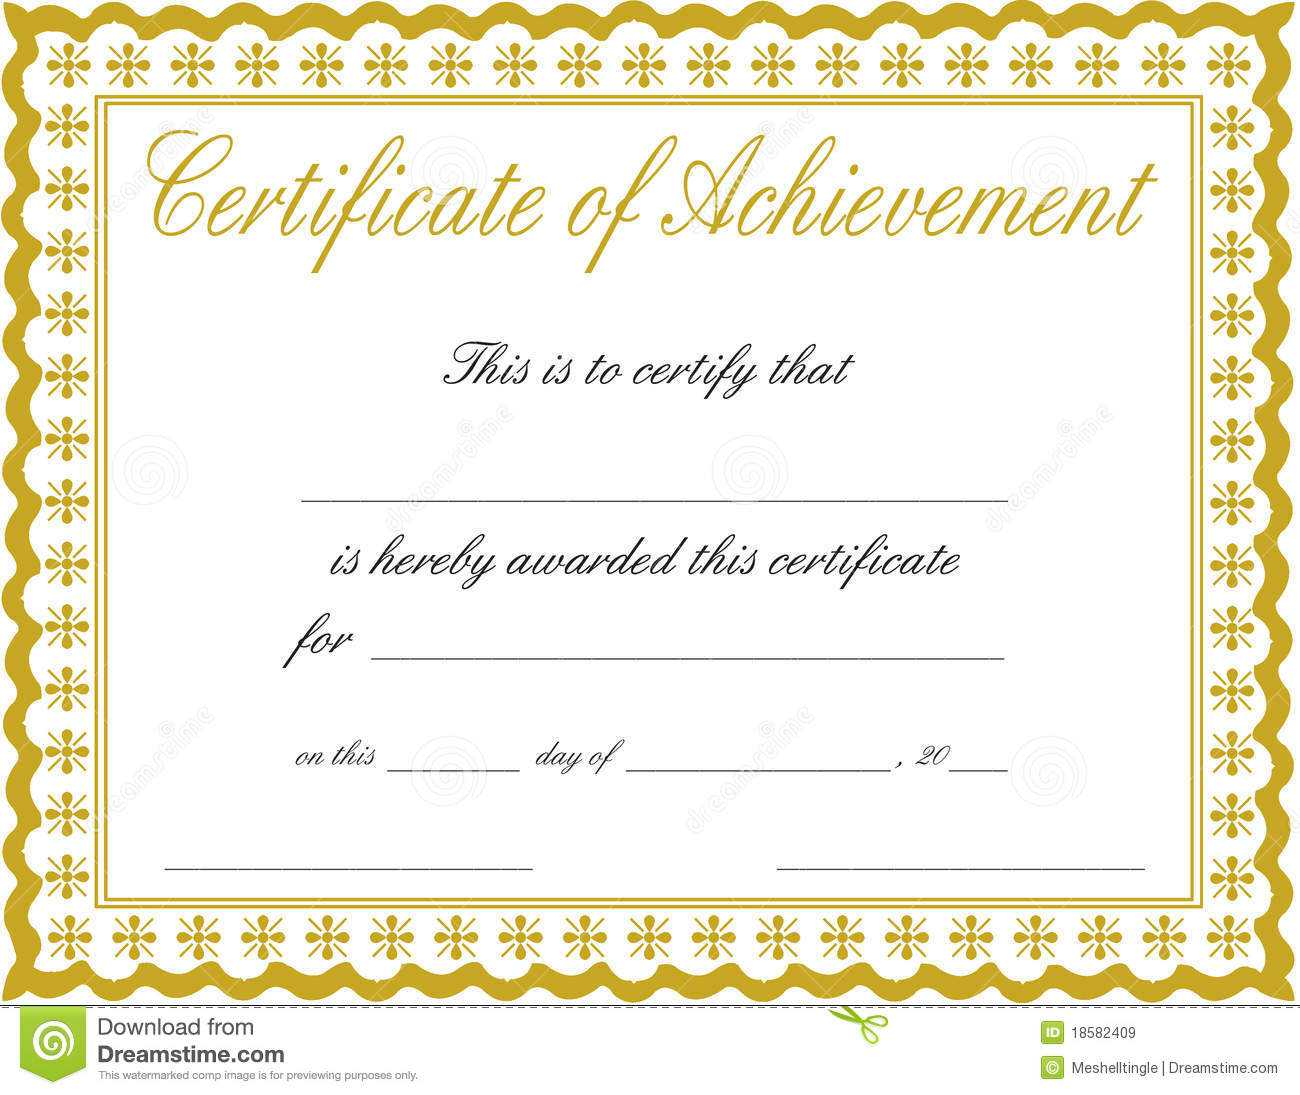 011 Free Printable Certificate Of Achievement Template Blank With Regard To Blank Certificate Of Achievement Template